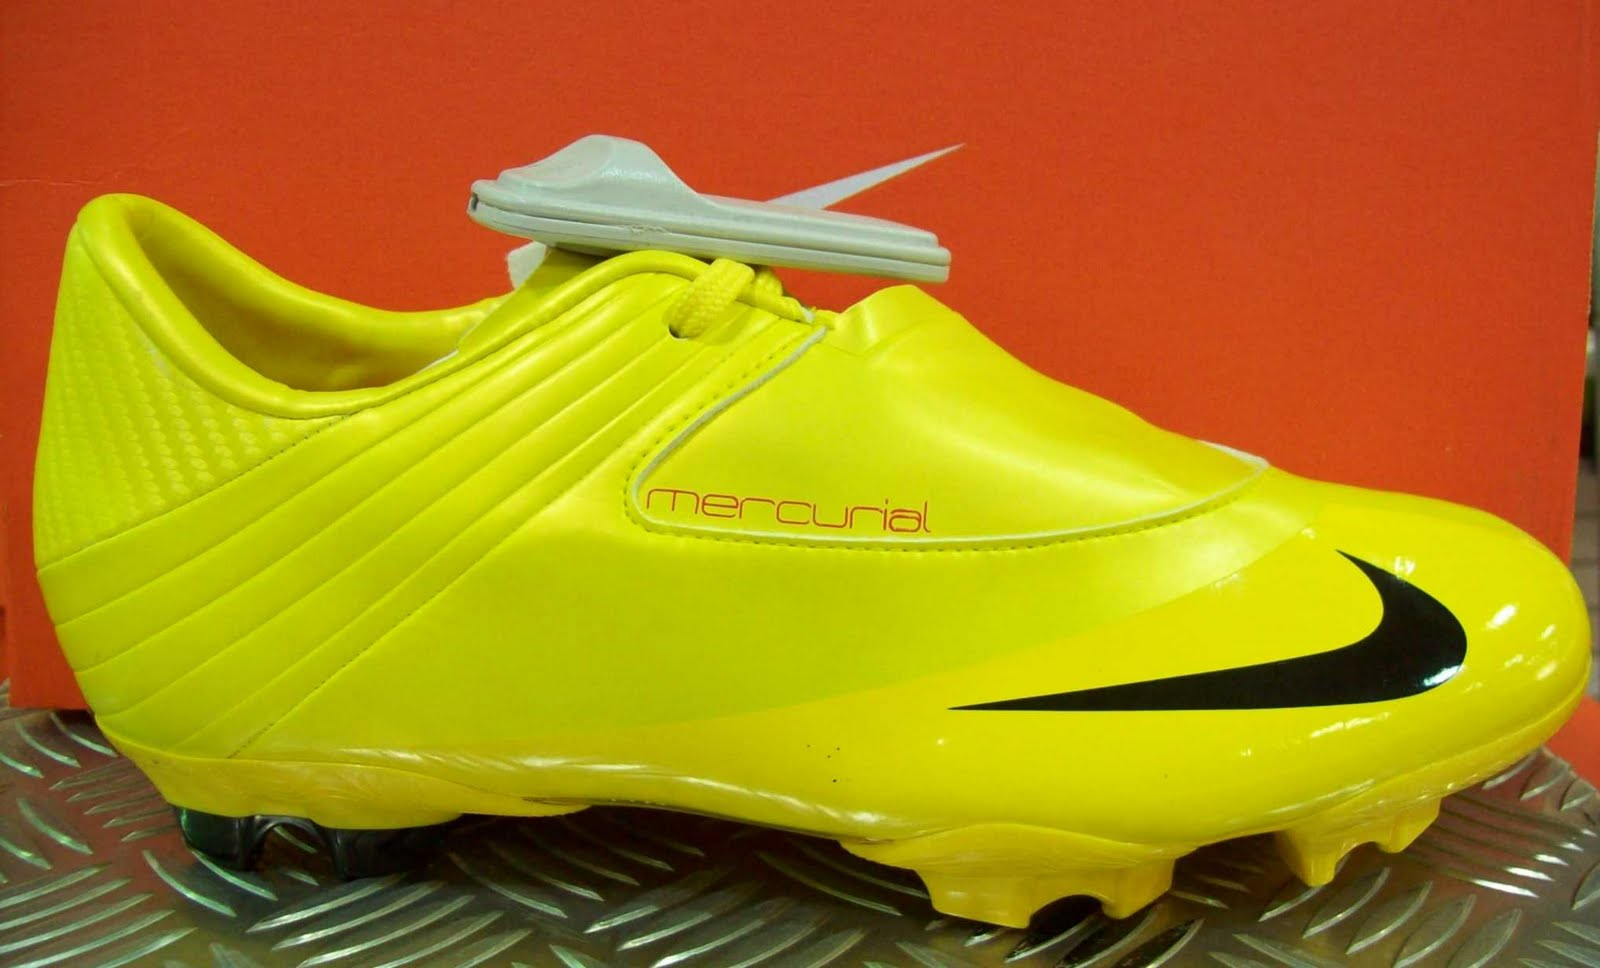 super popular 2cf09 d7e66 QMN ventas online: NIKE MERCURIAL STEAM AMARILLOS $359 ...